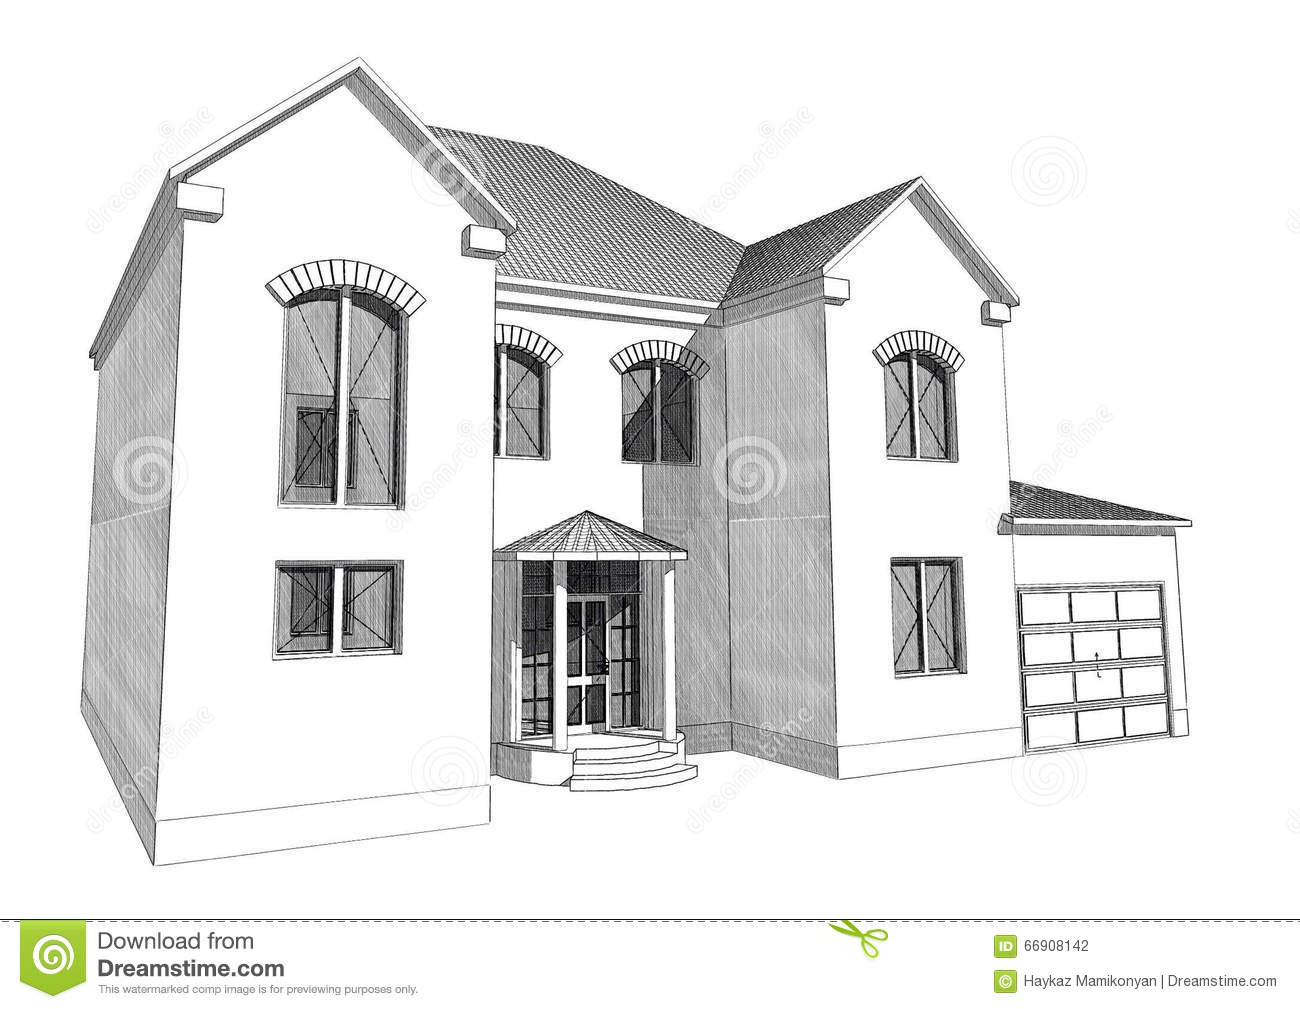 Merveilleux Residential House 3D. Design, Photoshop.